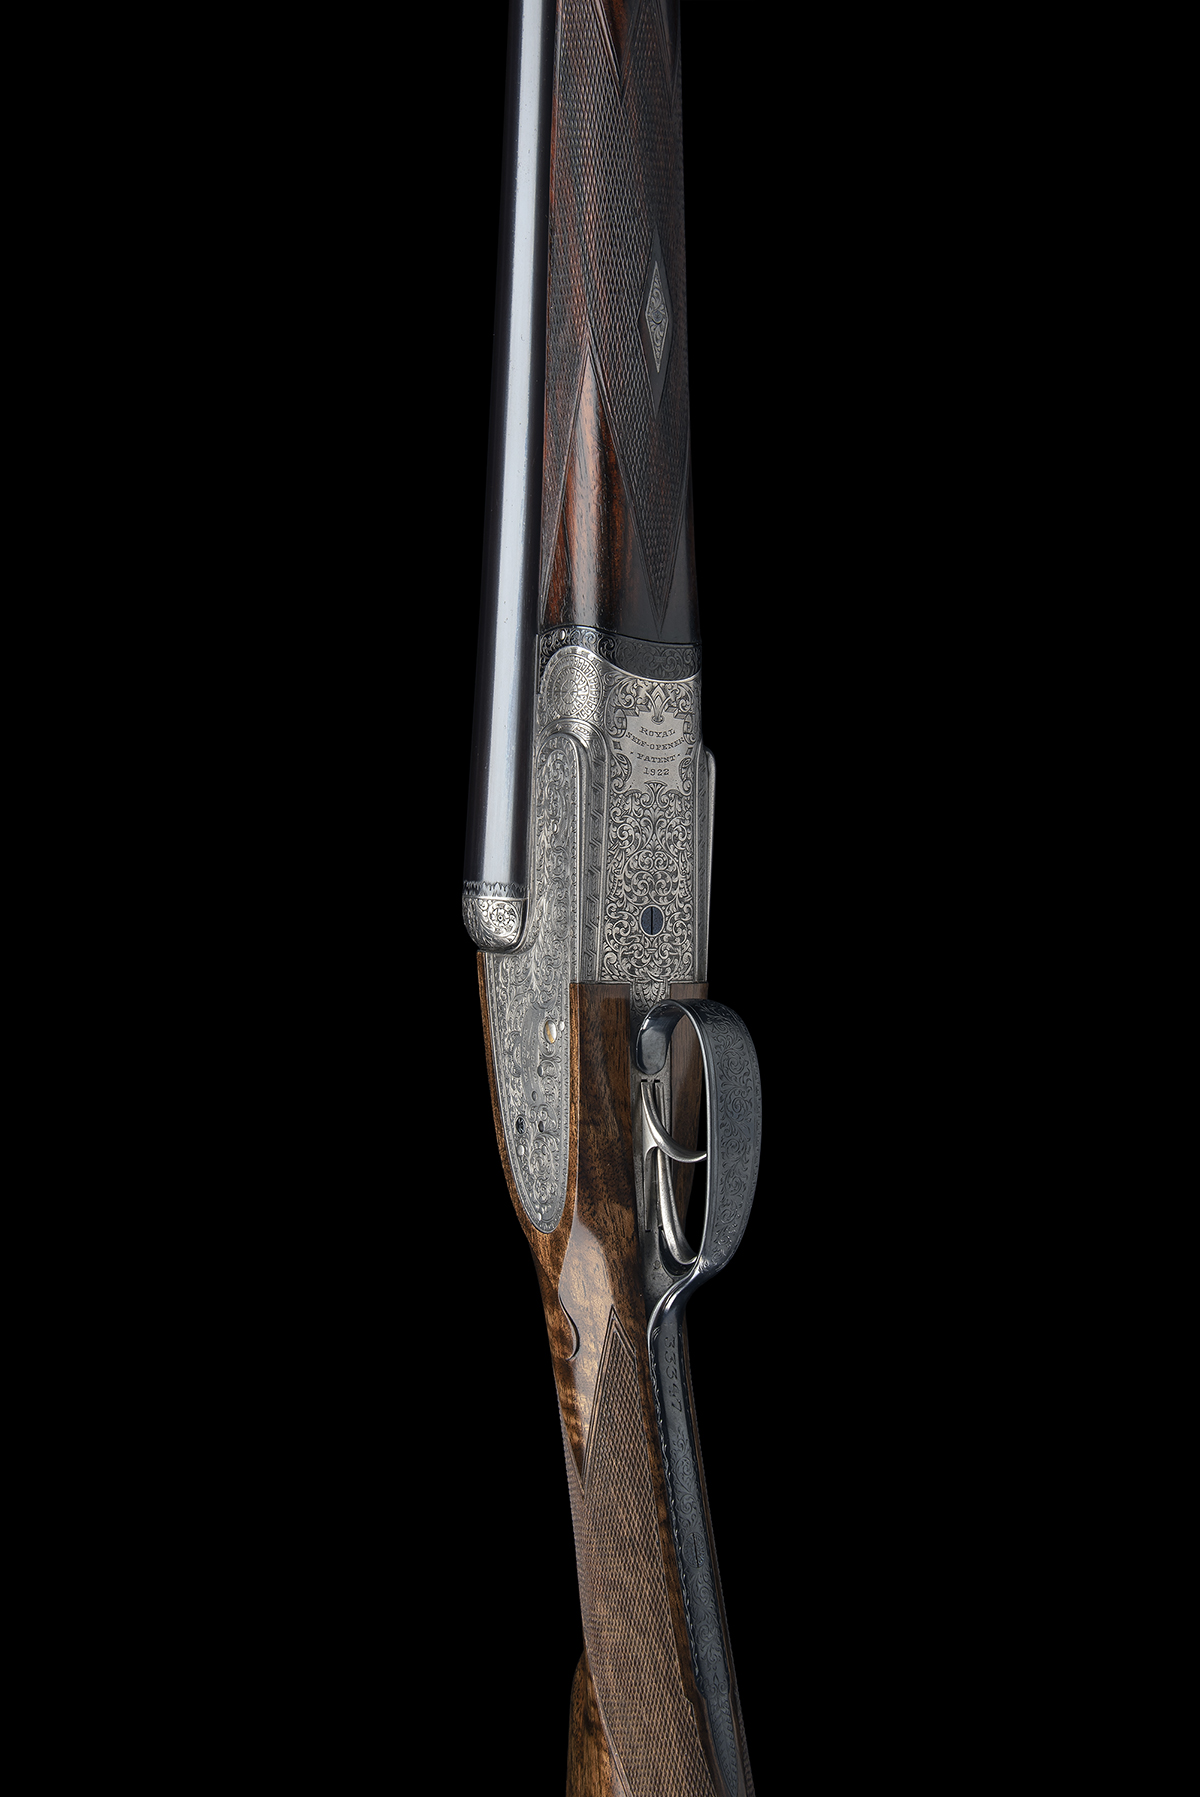 HOLLAND & HOLLAND A 12-BORE 'ROYAL' SELF-OPENING HAND-DETACHABLE SIDELOCK EJECTOR, serial no. 33347, - Image 3 of 9